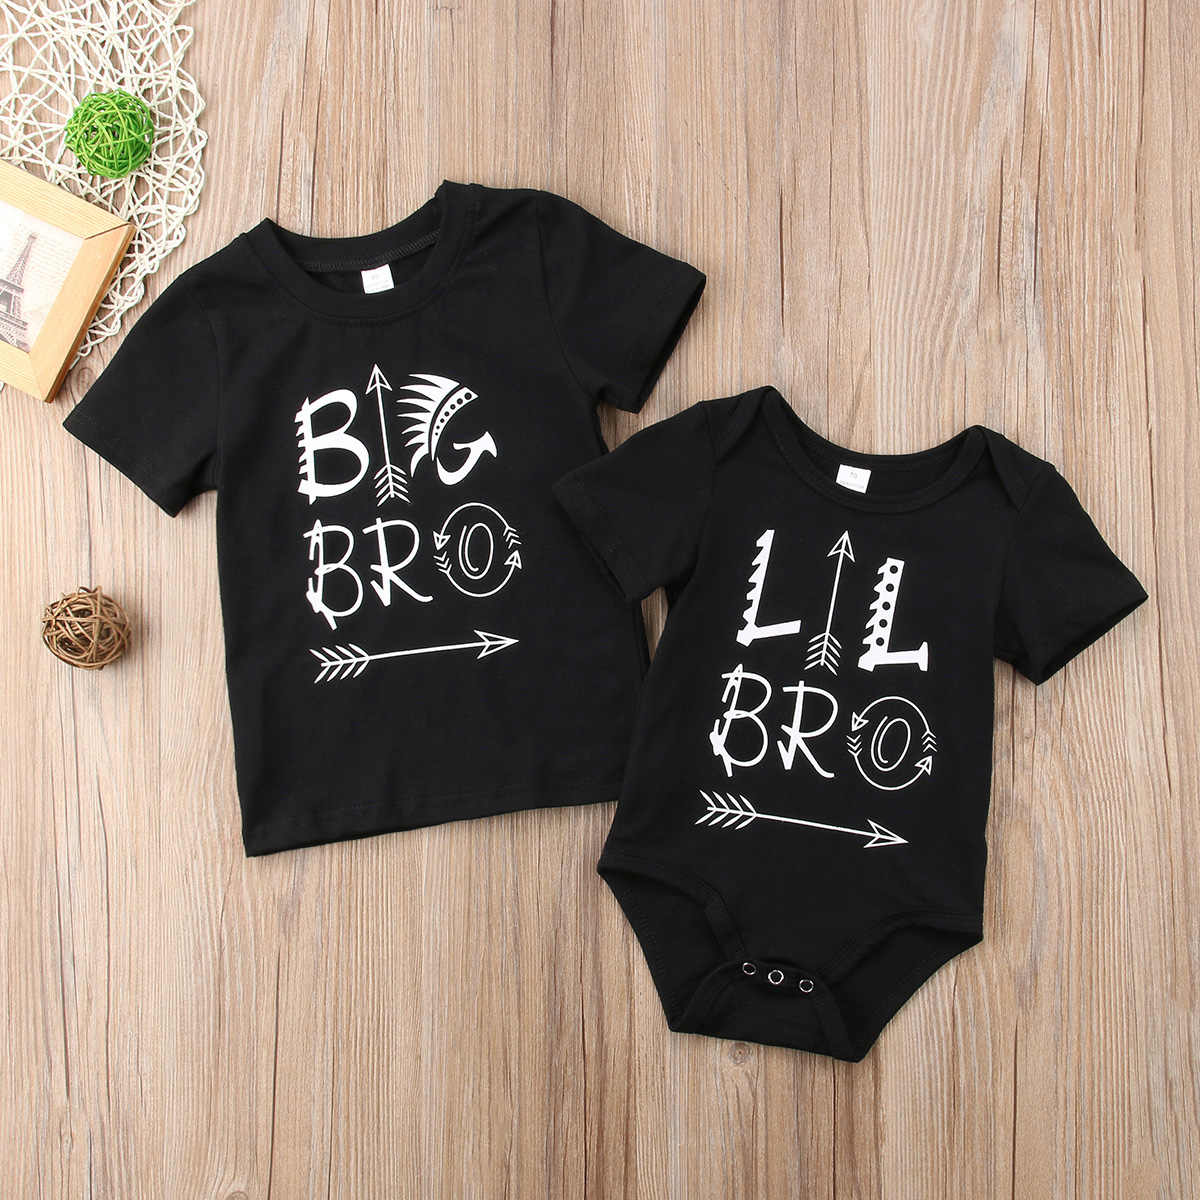 a7c811f1 Newborn Kids Baby Boy Little Brother Romper Big Brother Cotton T-shirts  Letter Short Sleeve